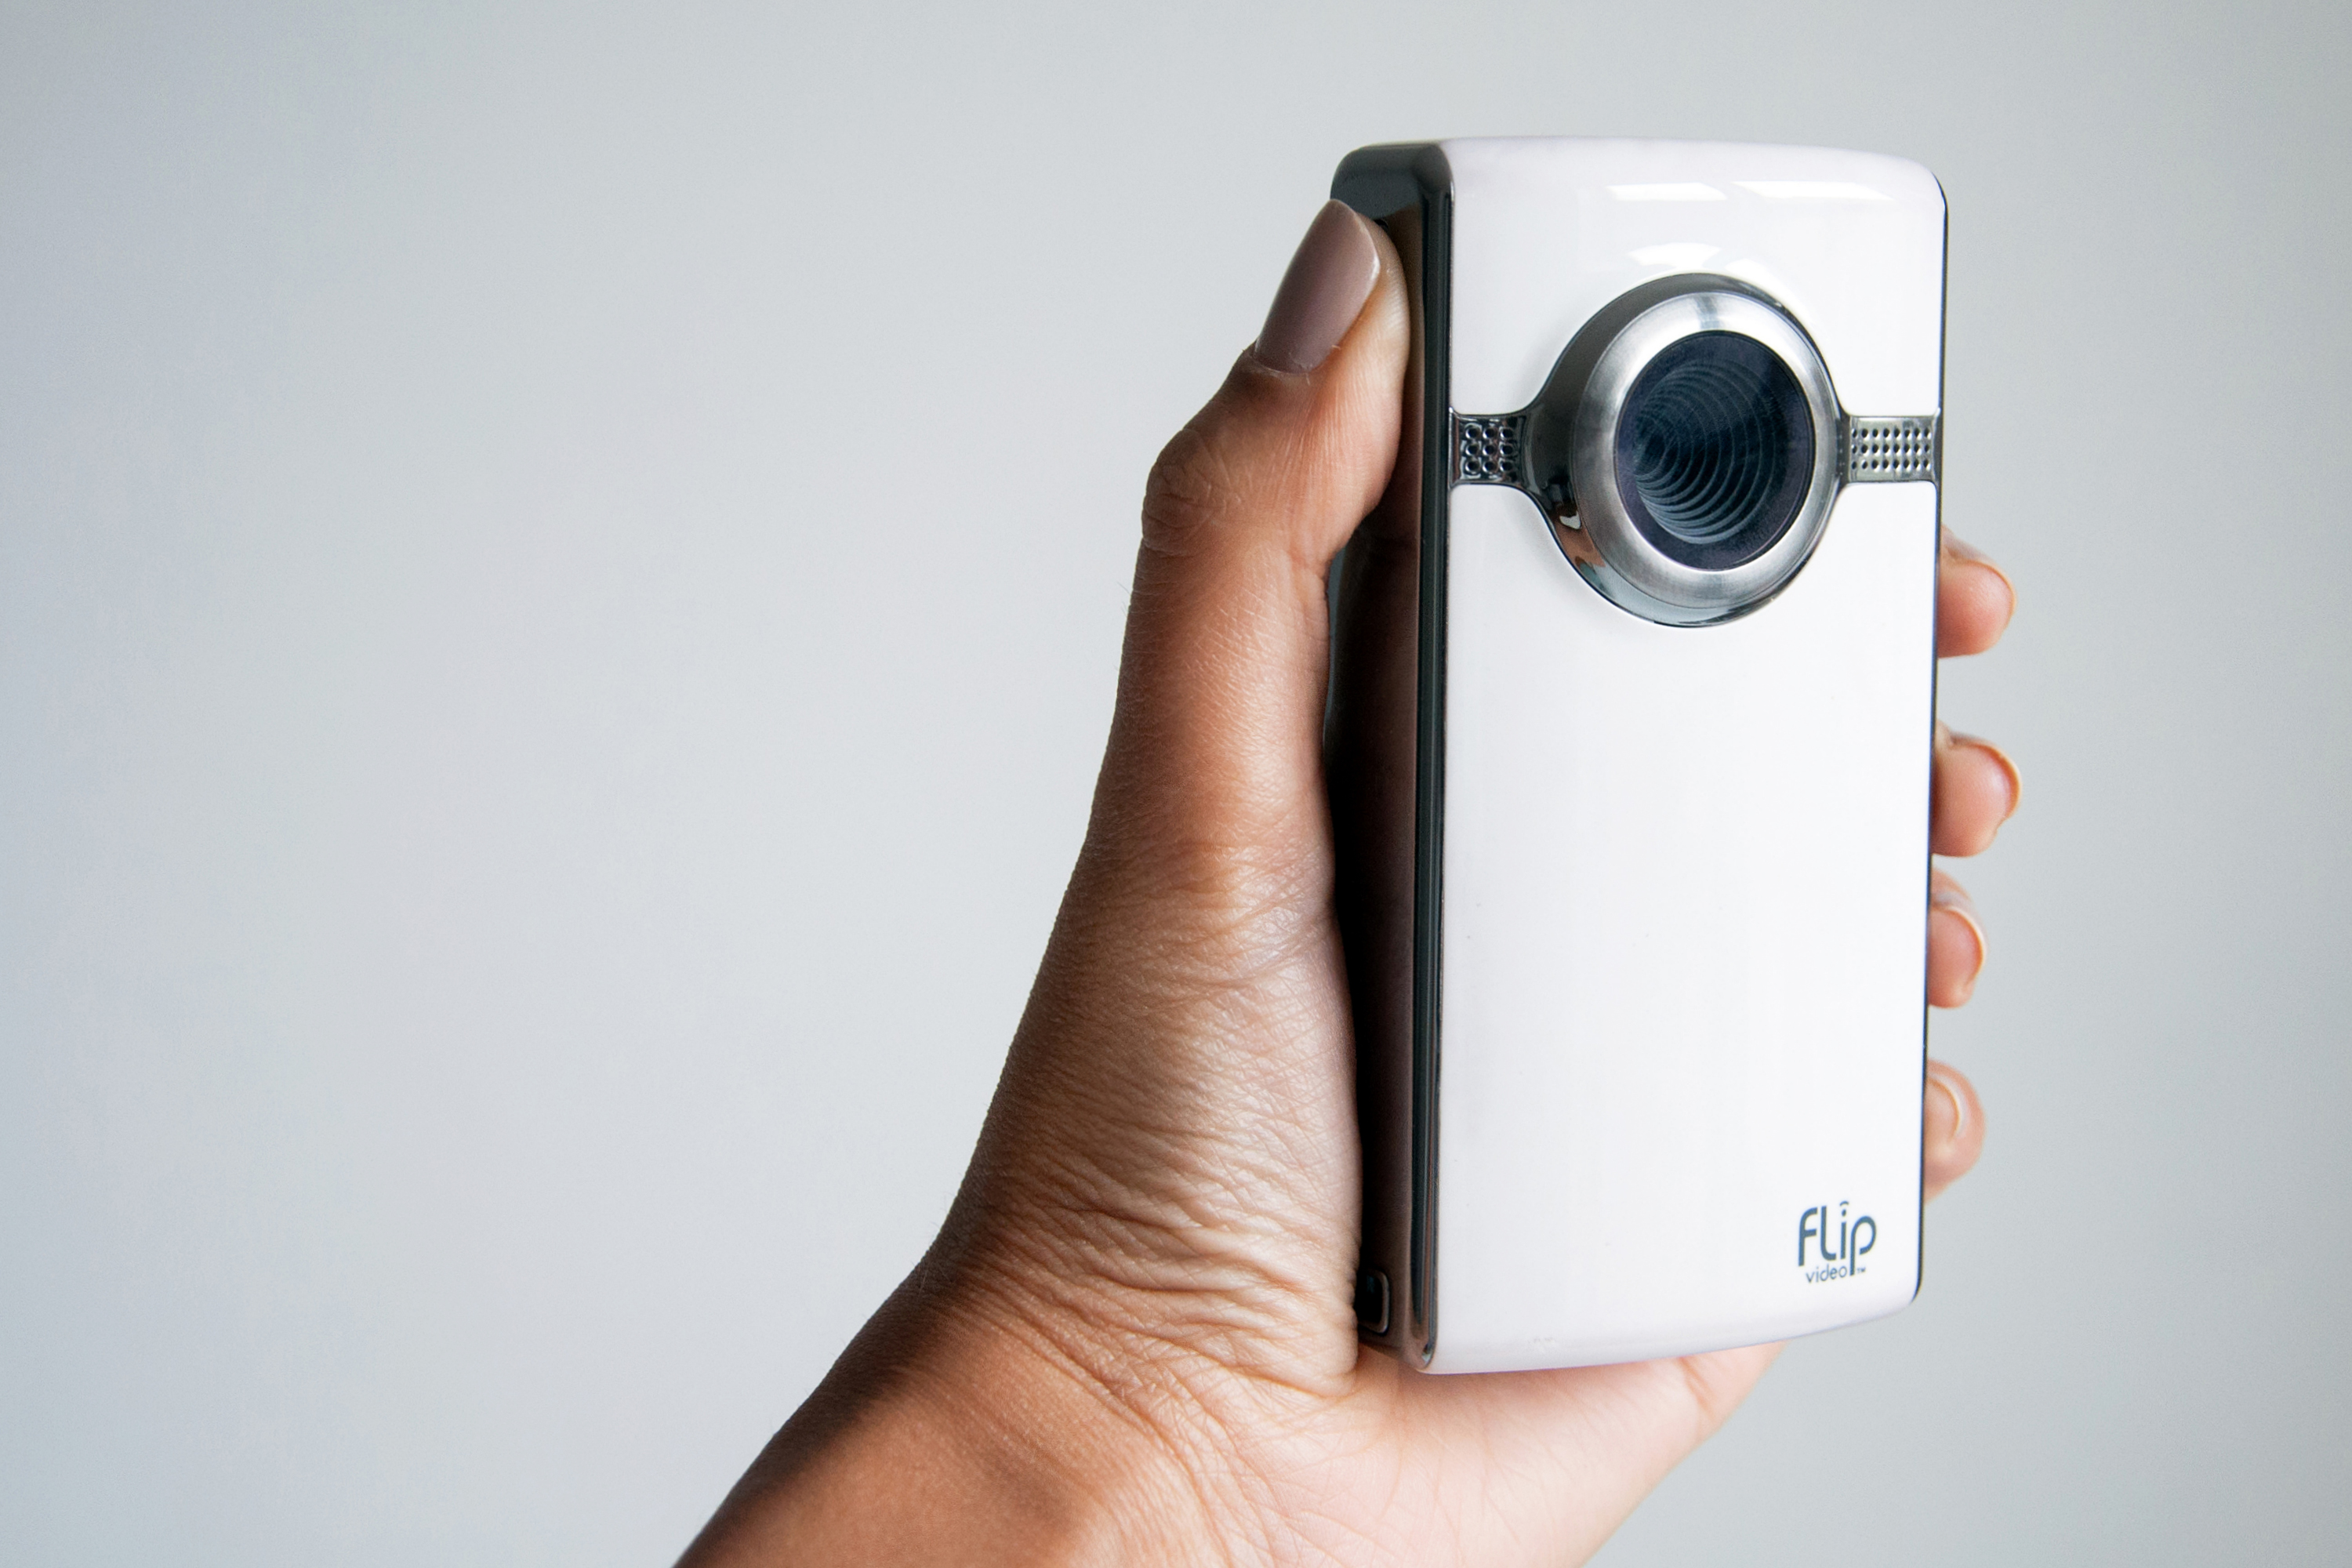 bHow to Reset a Flip Camera